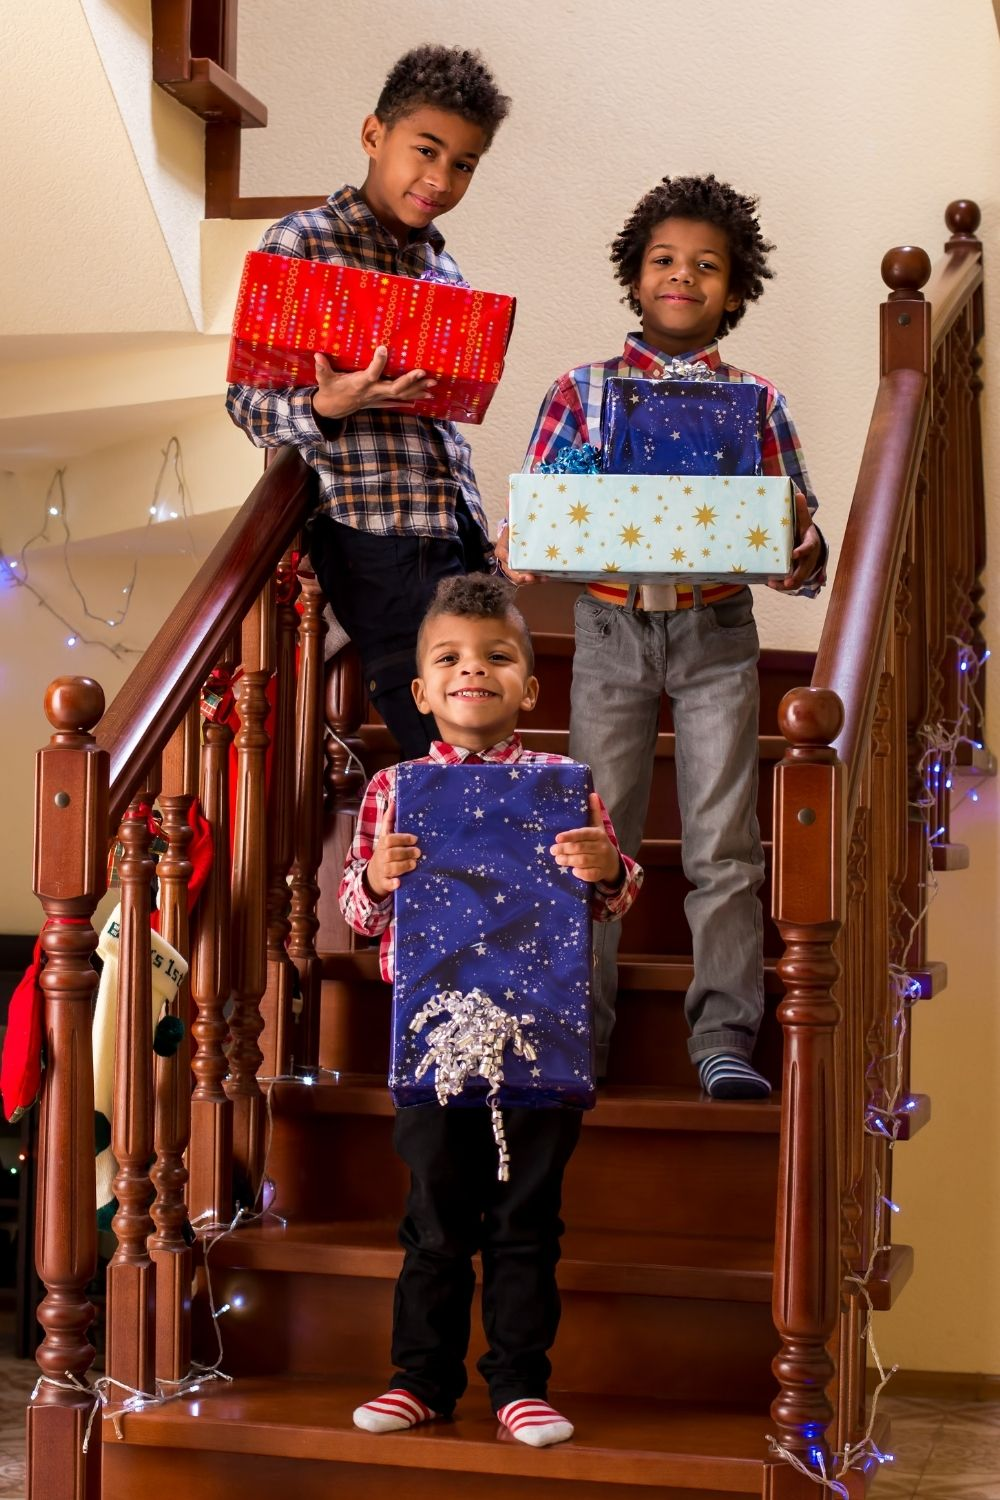 December is Safe Toys and Gifts Month - consider safety and age range of toys